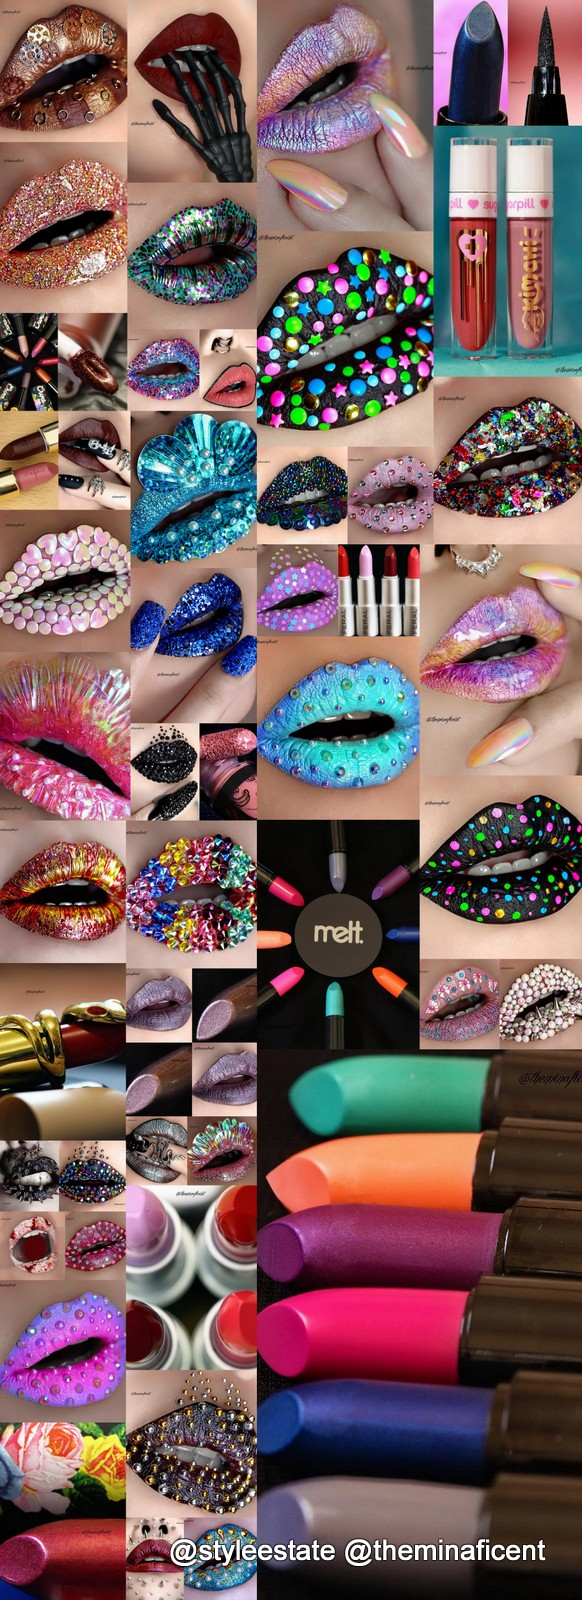 36✨Spectacular✨🆒🆕💋Lip-Art Designs ➕ 14 Product Deets✔️By @theminaficent